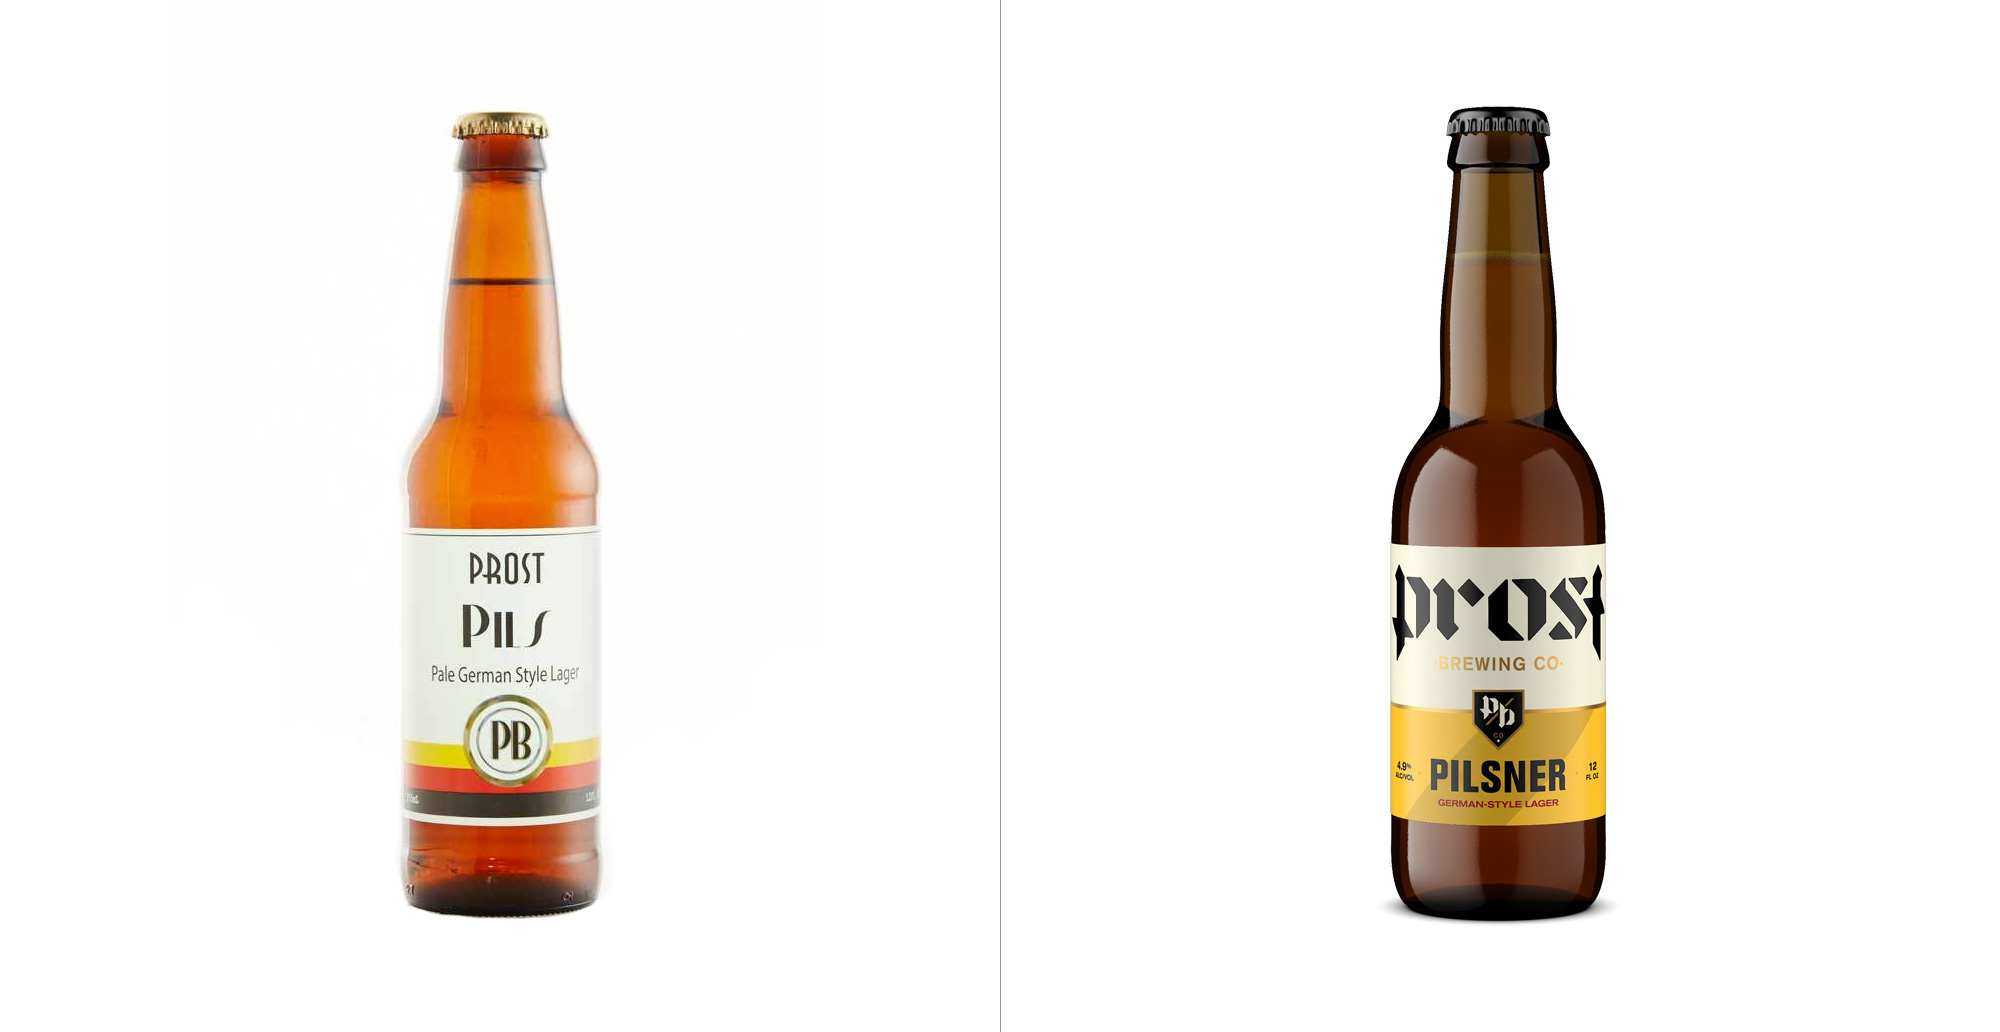 New Logo, Identity, and Packaging for Prost Brewing by CODO